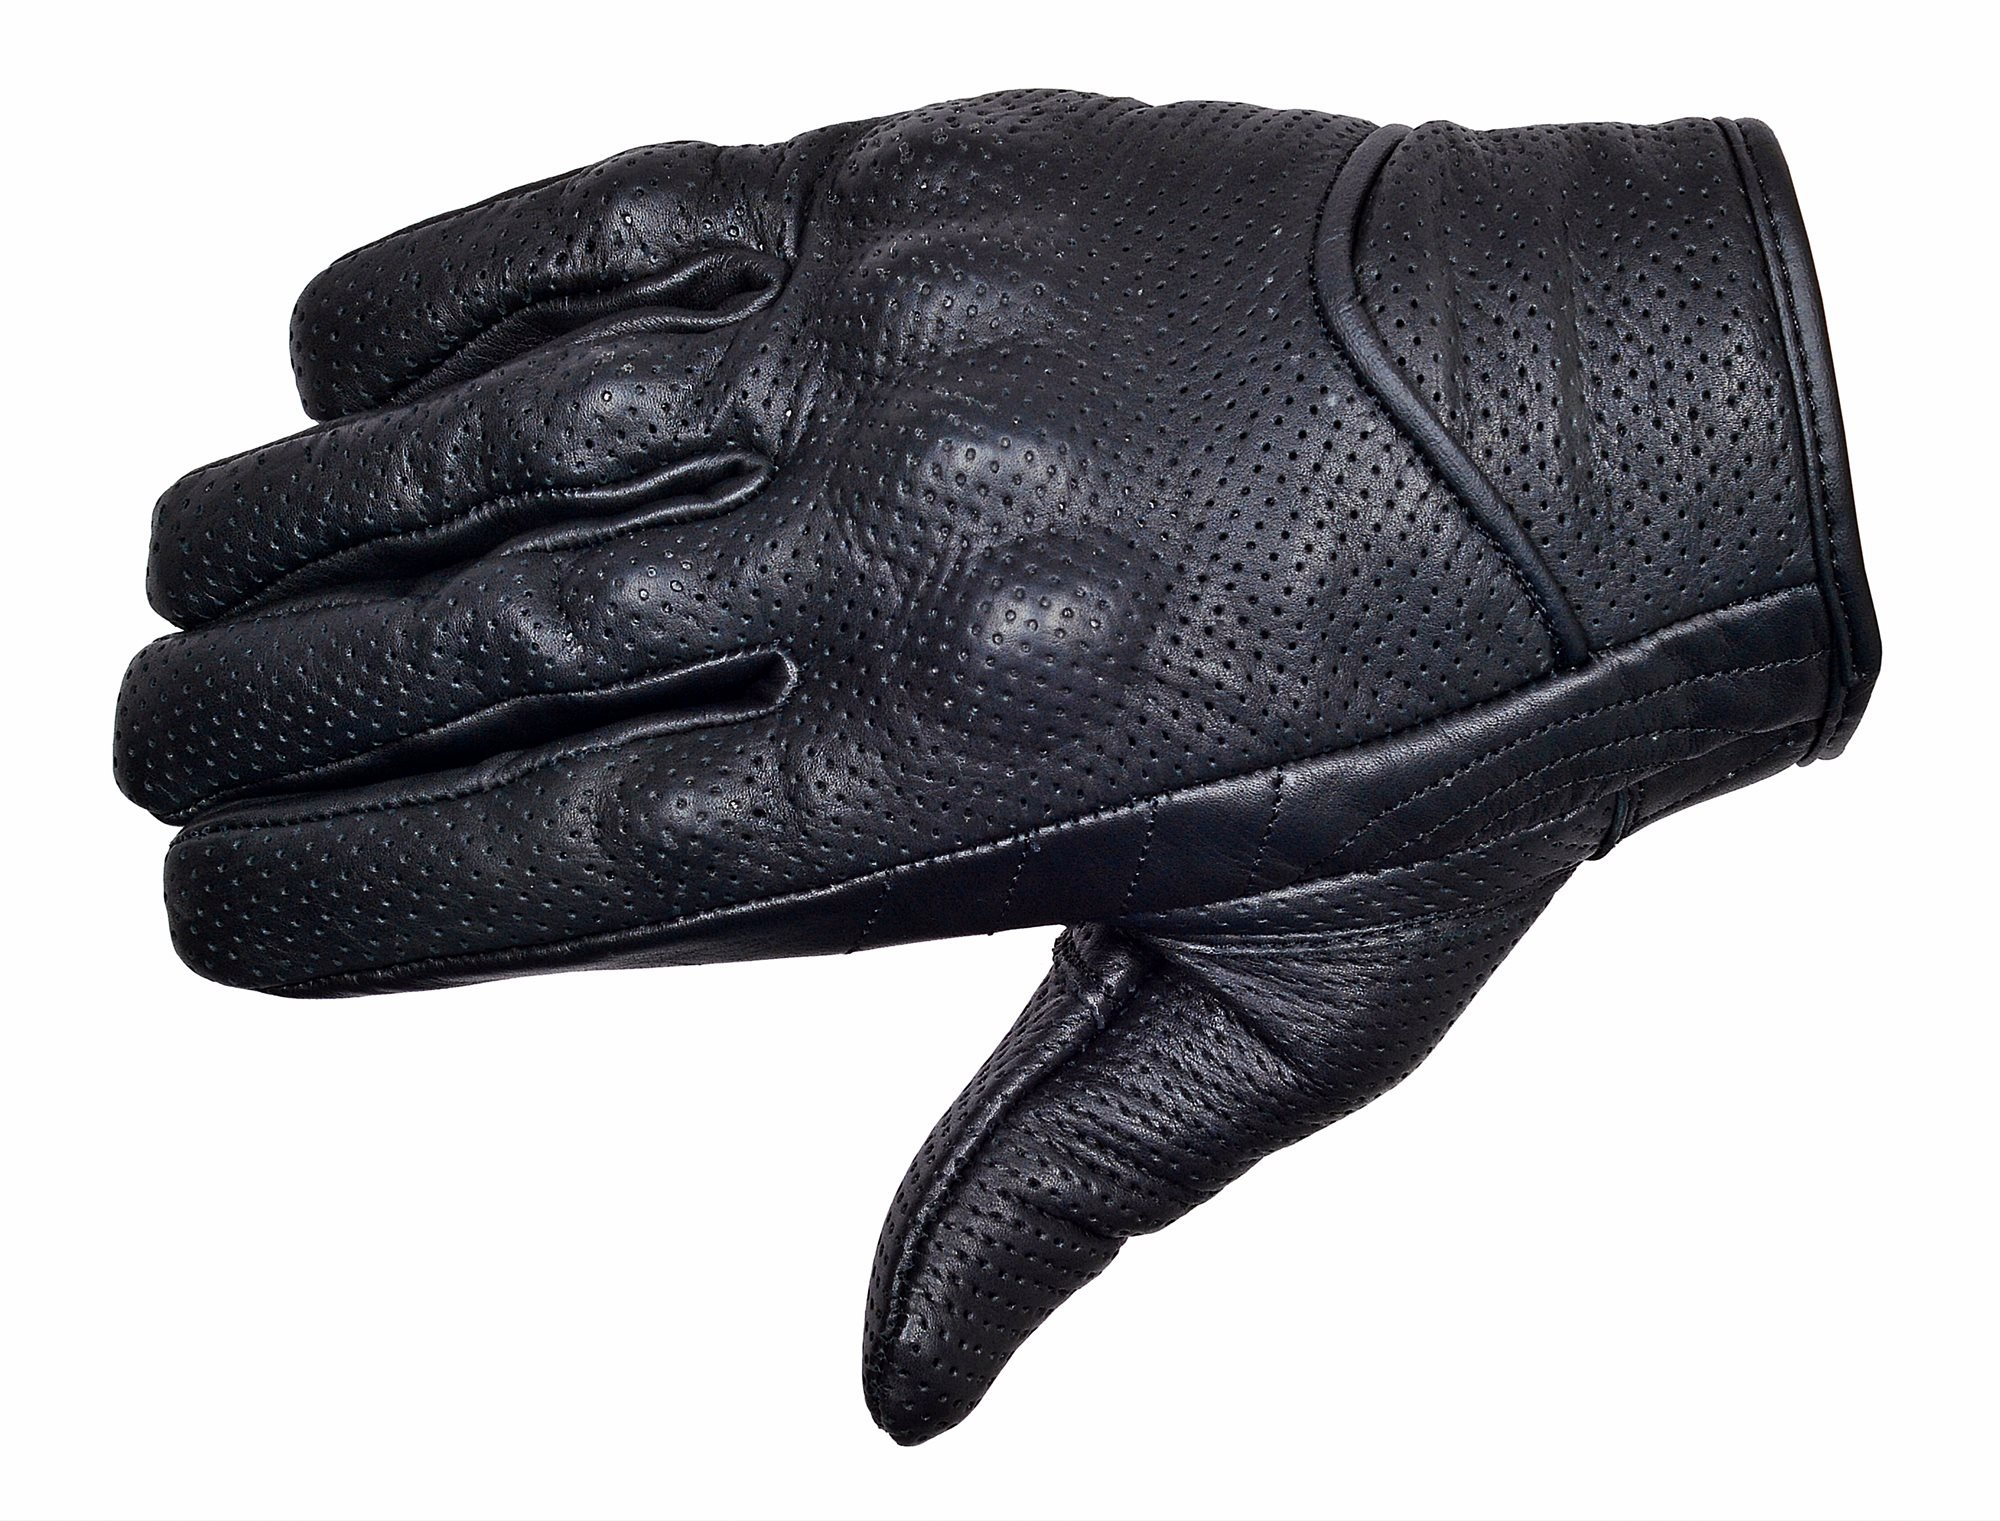 Perforated-Cowhide-Motorcycle-Biker-Riding-Gloves-Black